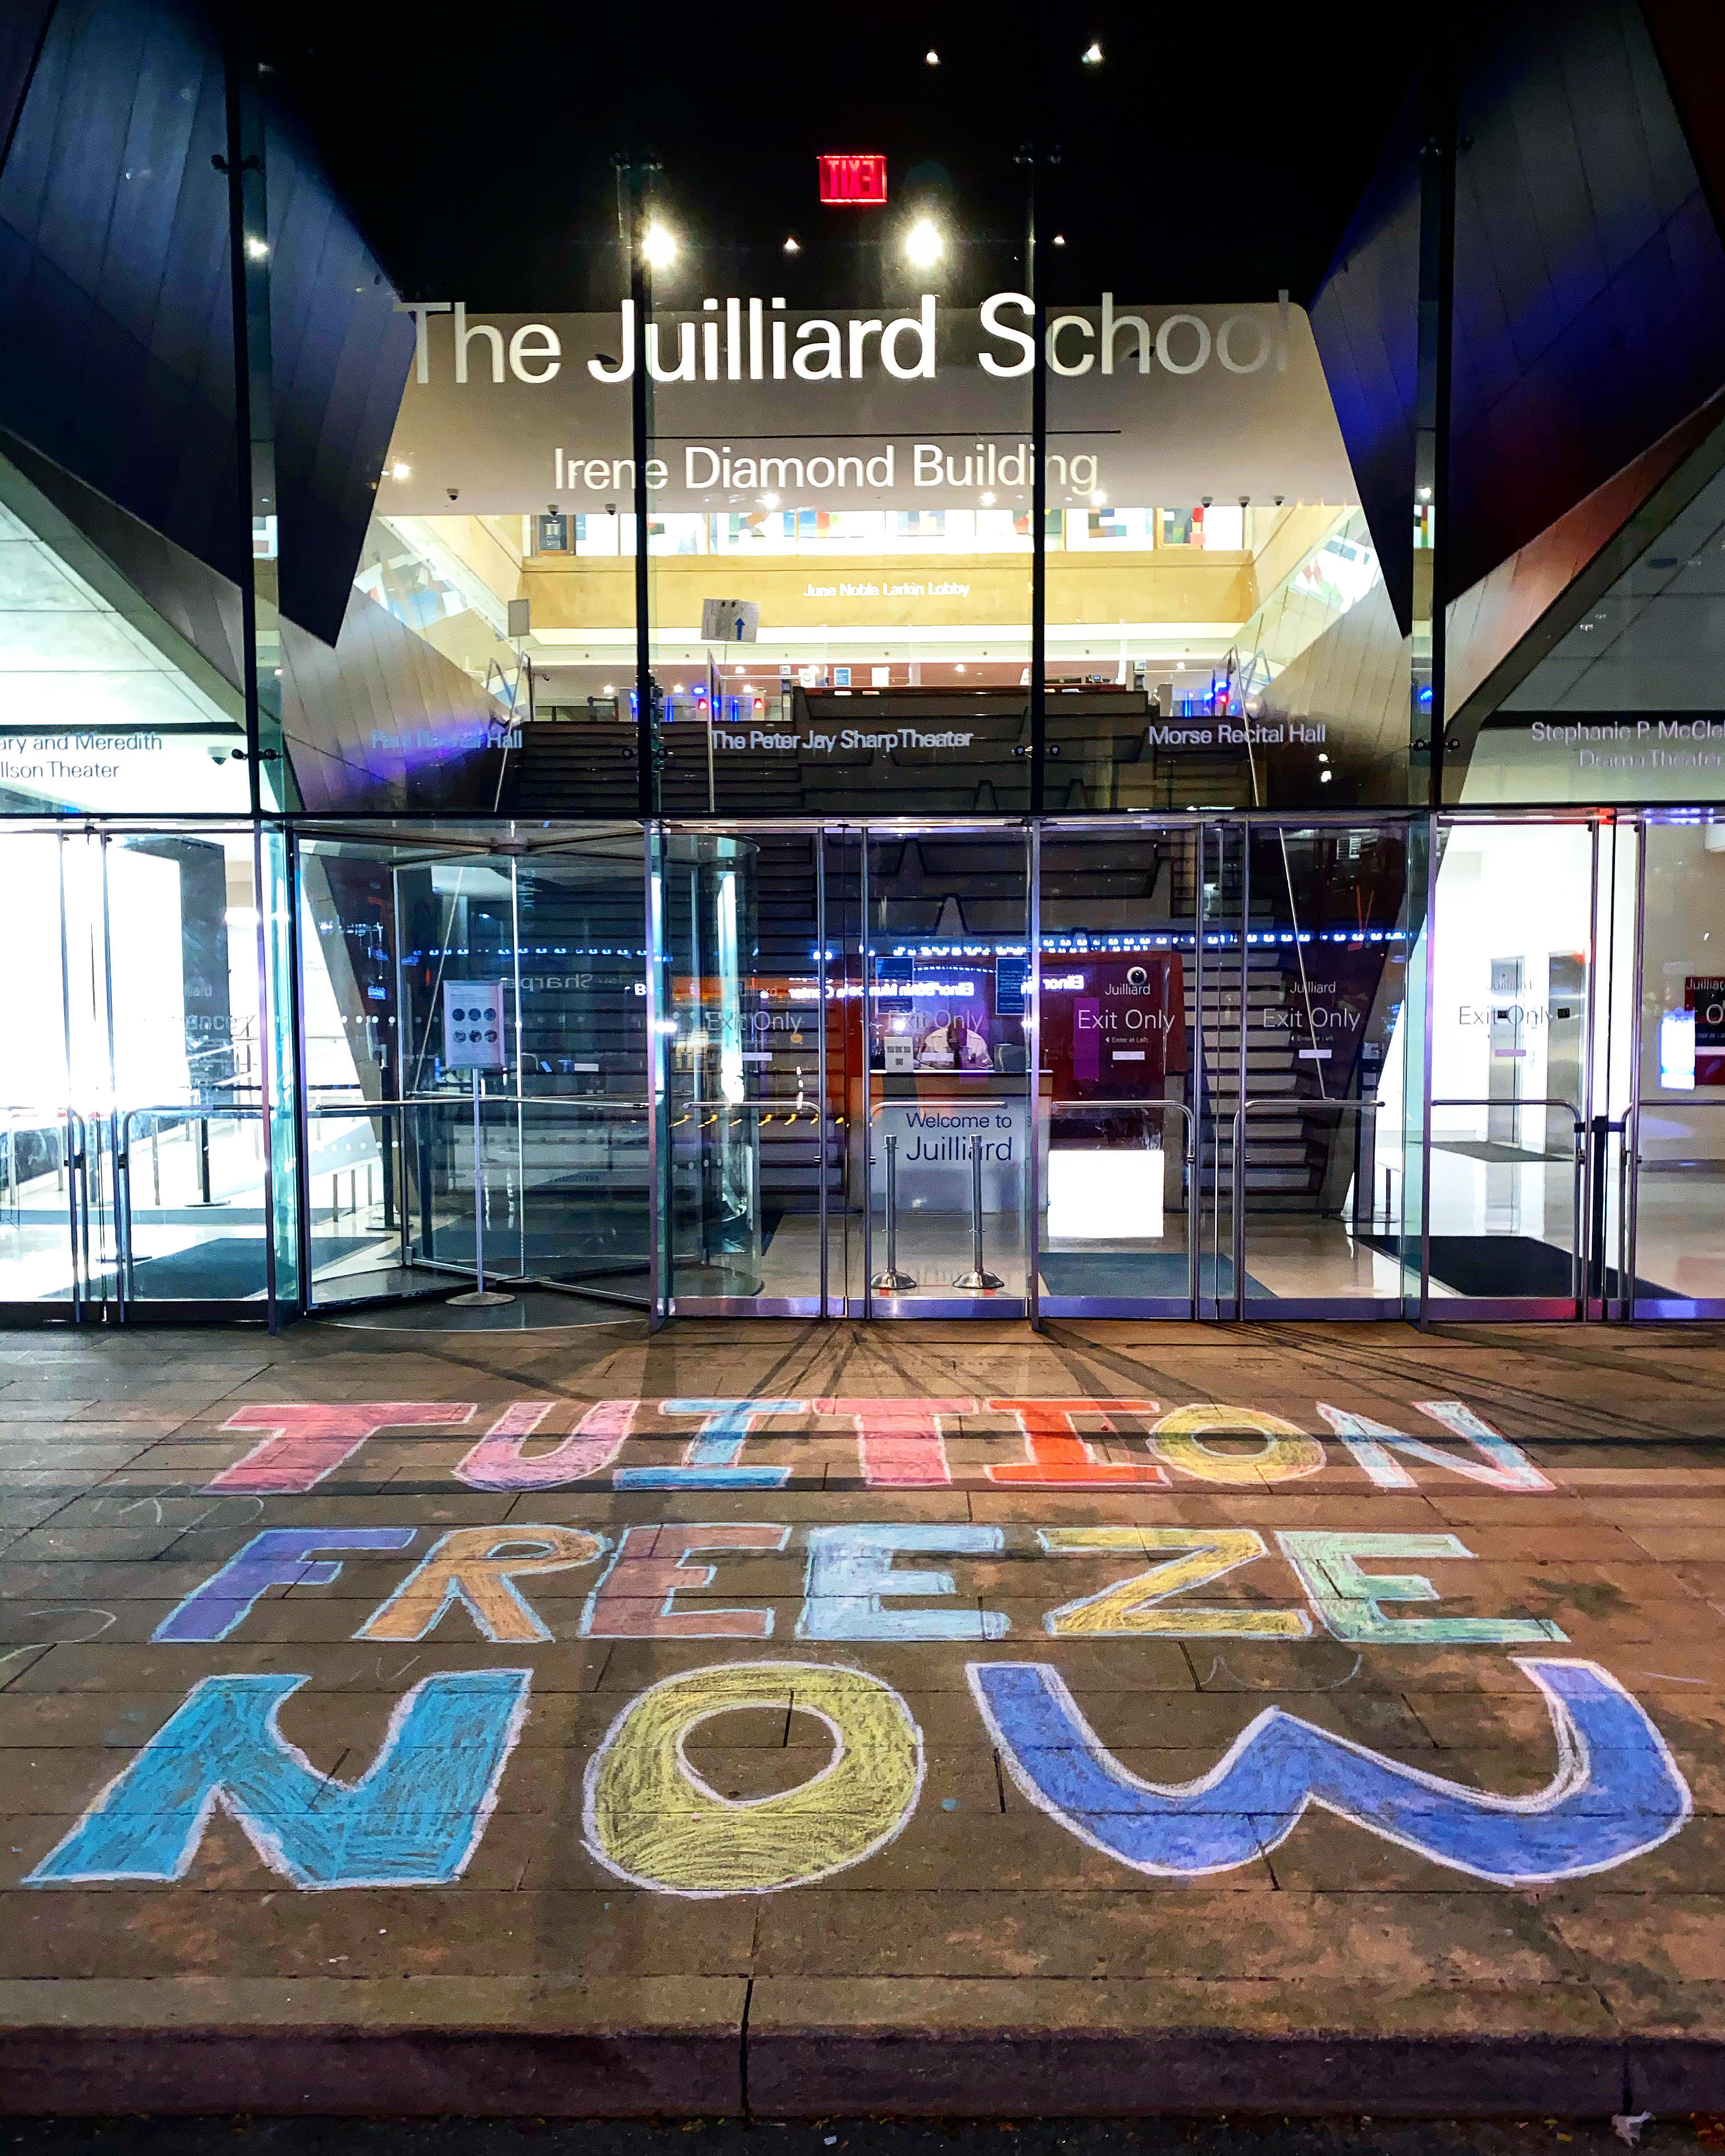 Students demand fees freeze. Juilliard says no. So they are occupying the building